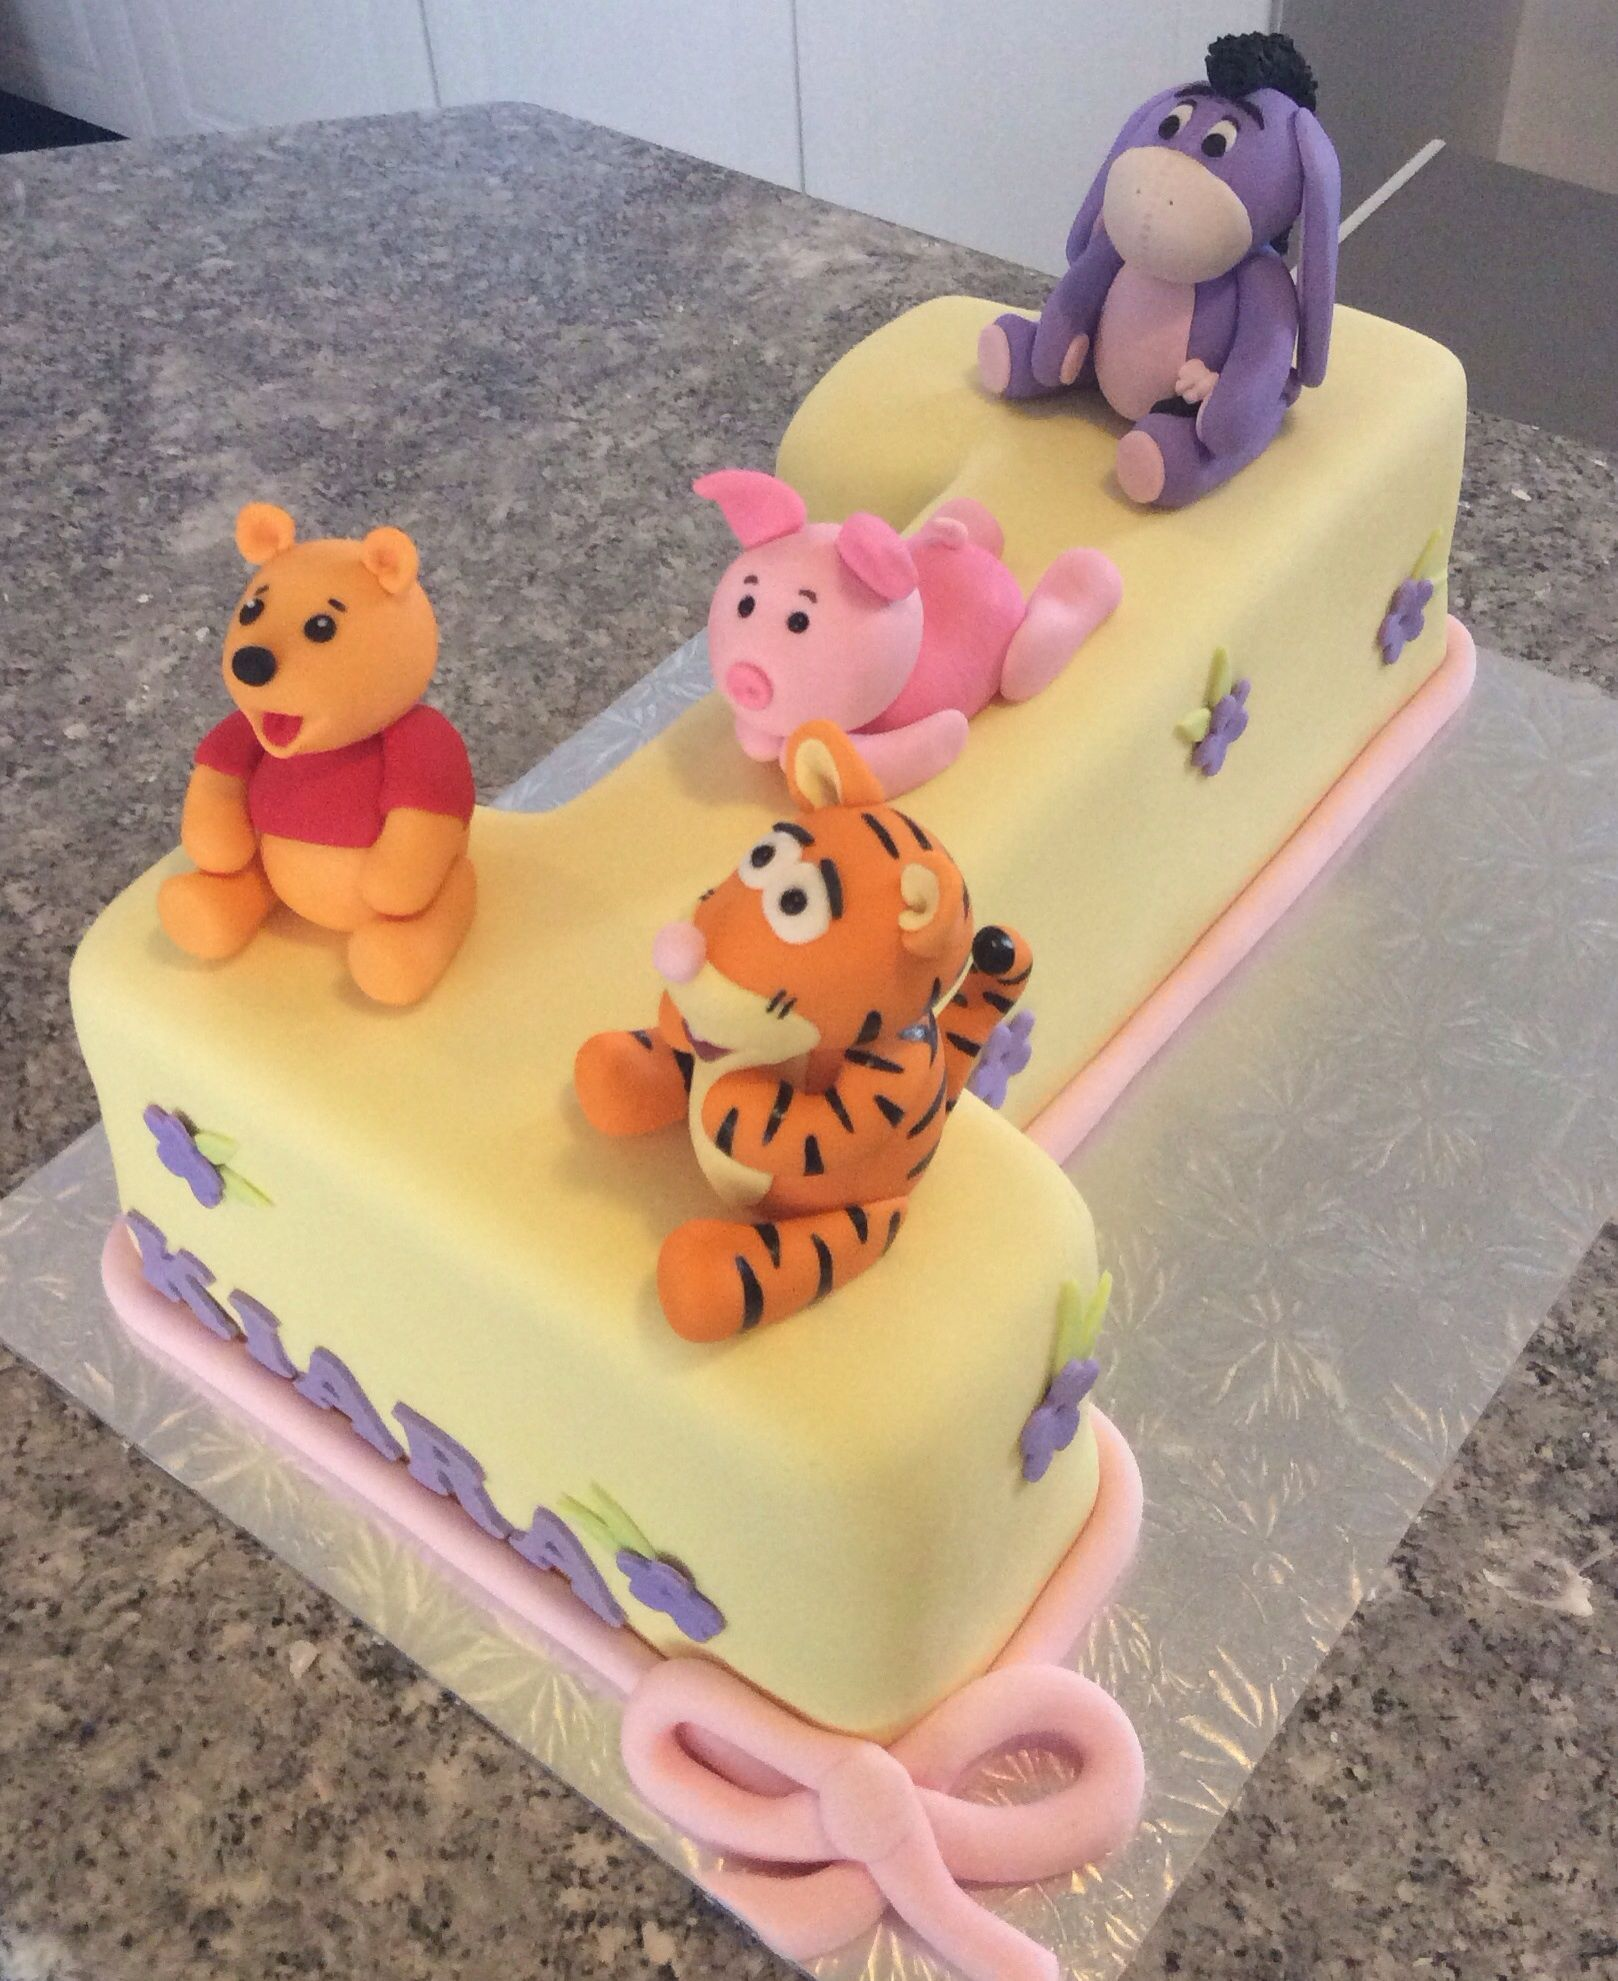 Outstanding 25 Inspired Photo Of Winnie The Pooh Birthday Cake With Images Funny Birthday Cards Online Necthendildamsfinfo